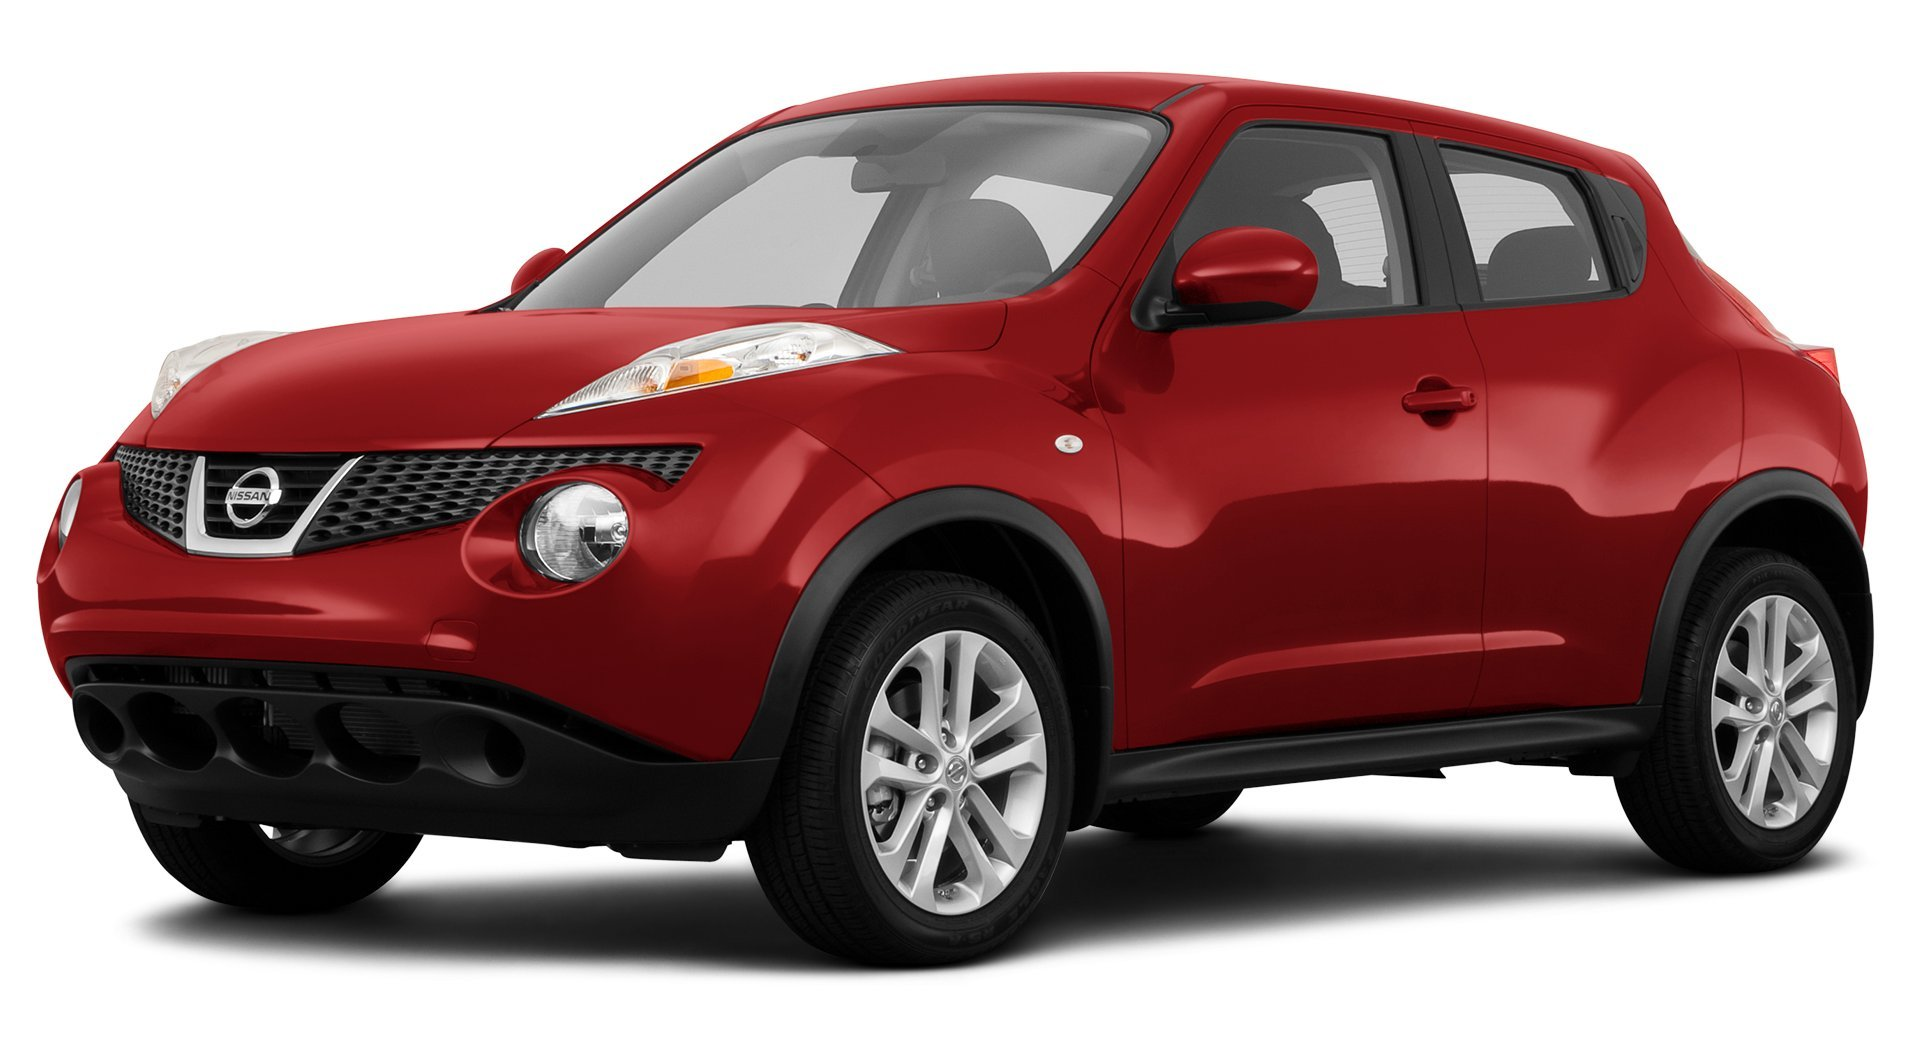 Amazon.com: 2011 Nissan Juke Reviews, Images, And Specs